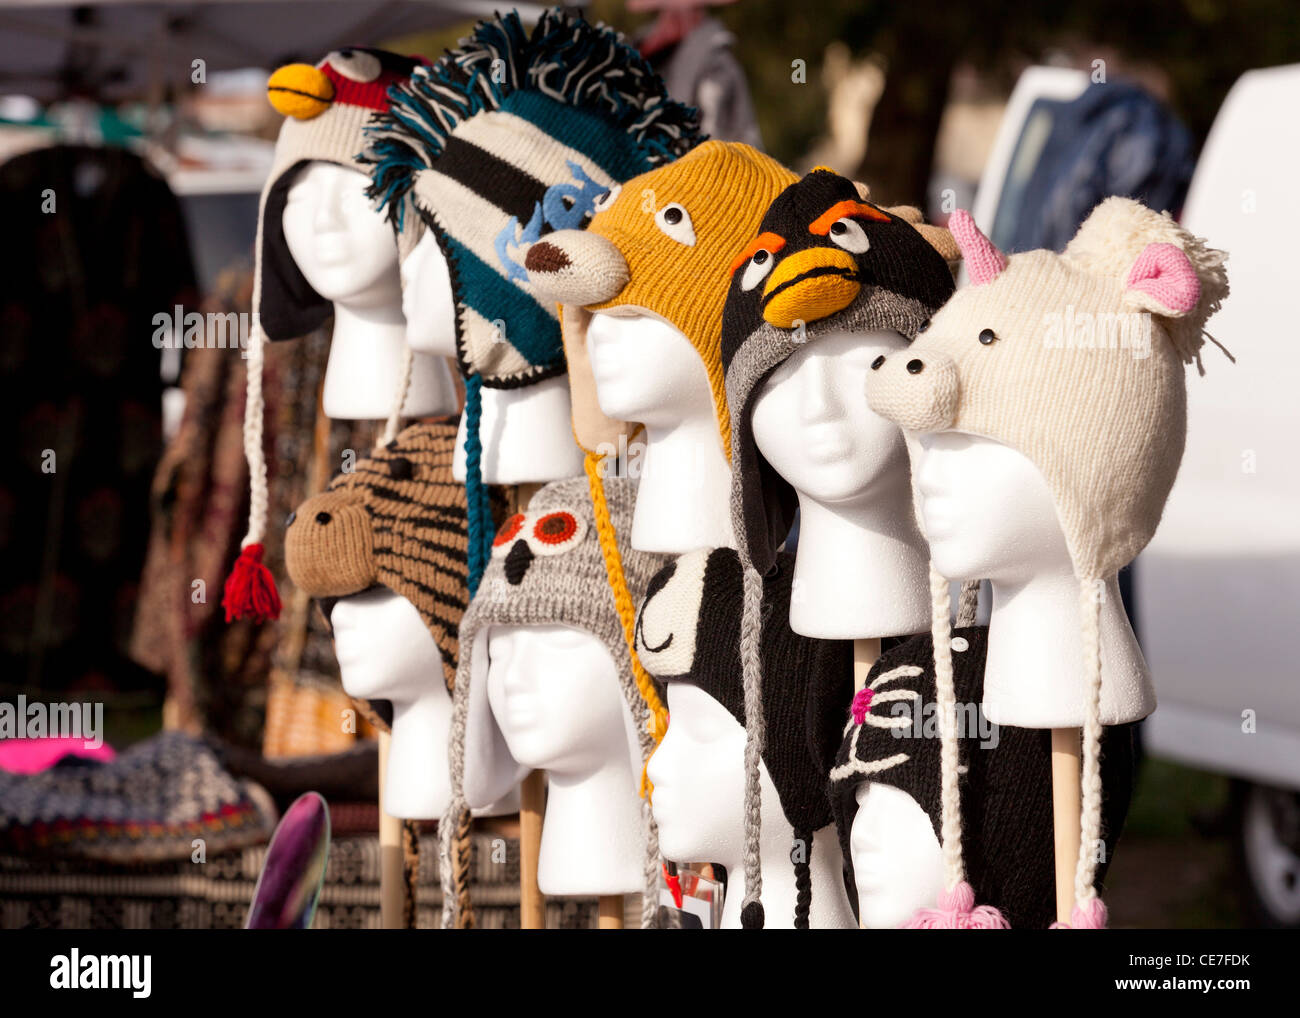 Character trapper hats for sale at flea market - Stock Image